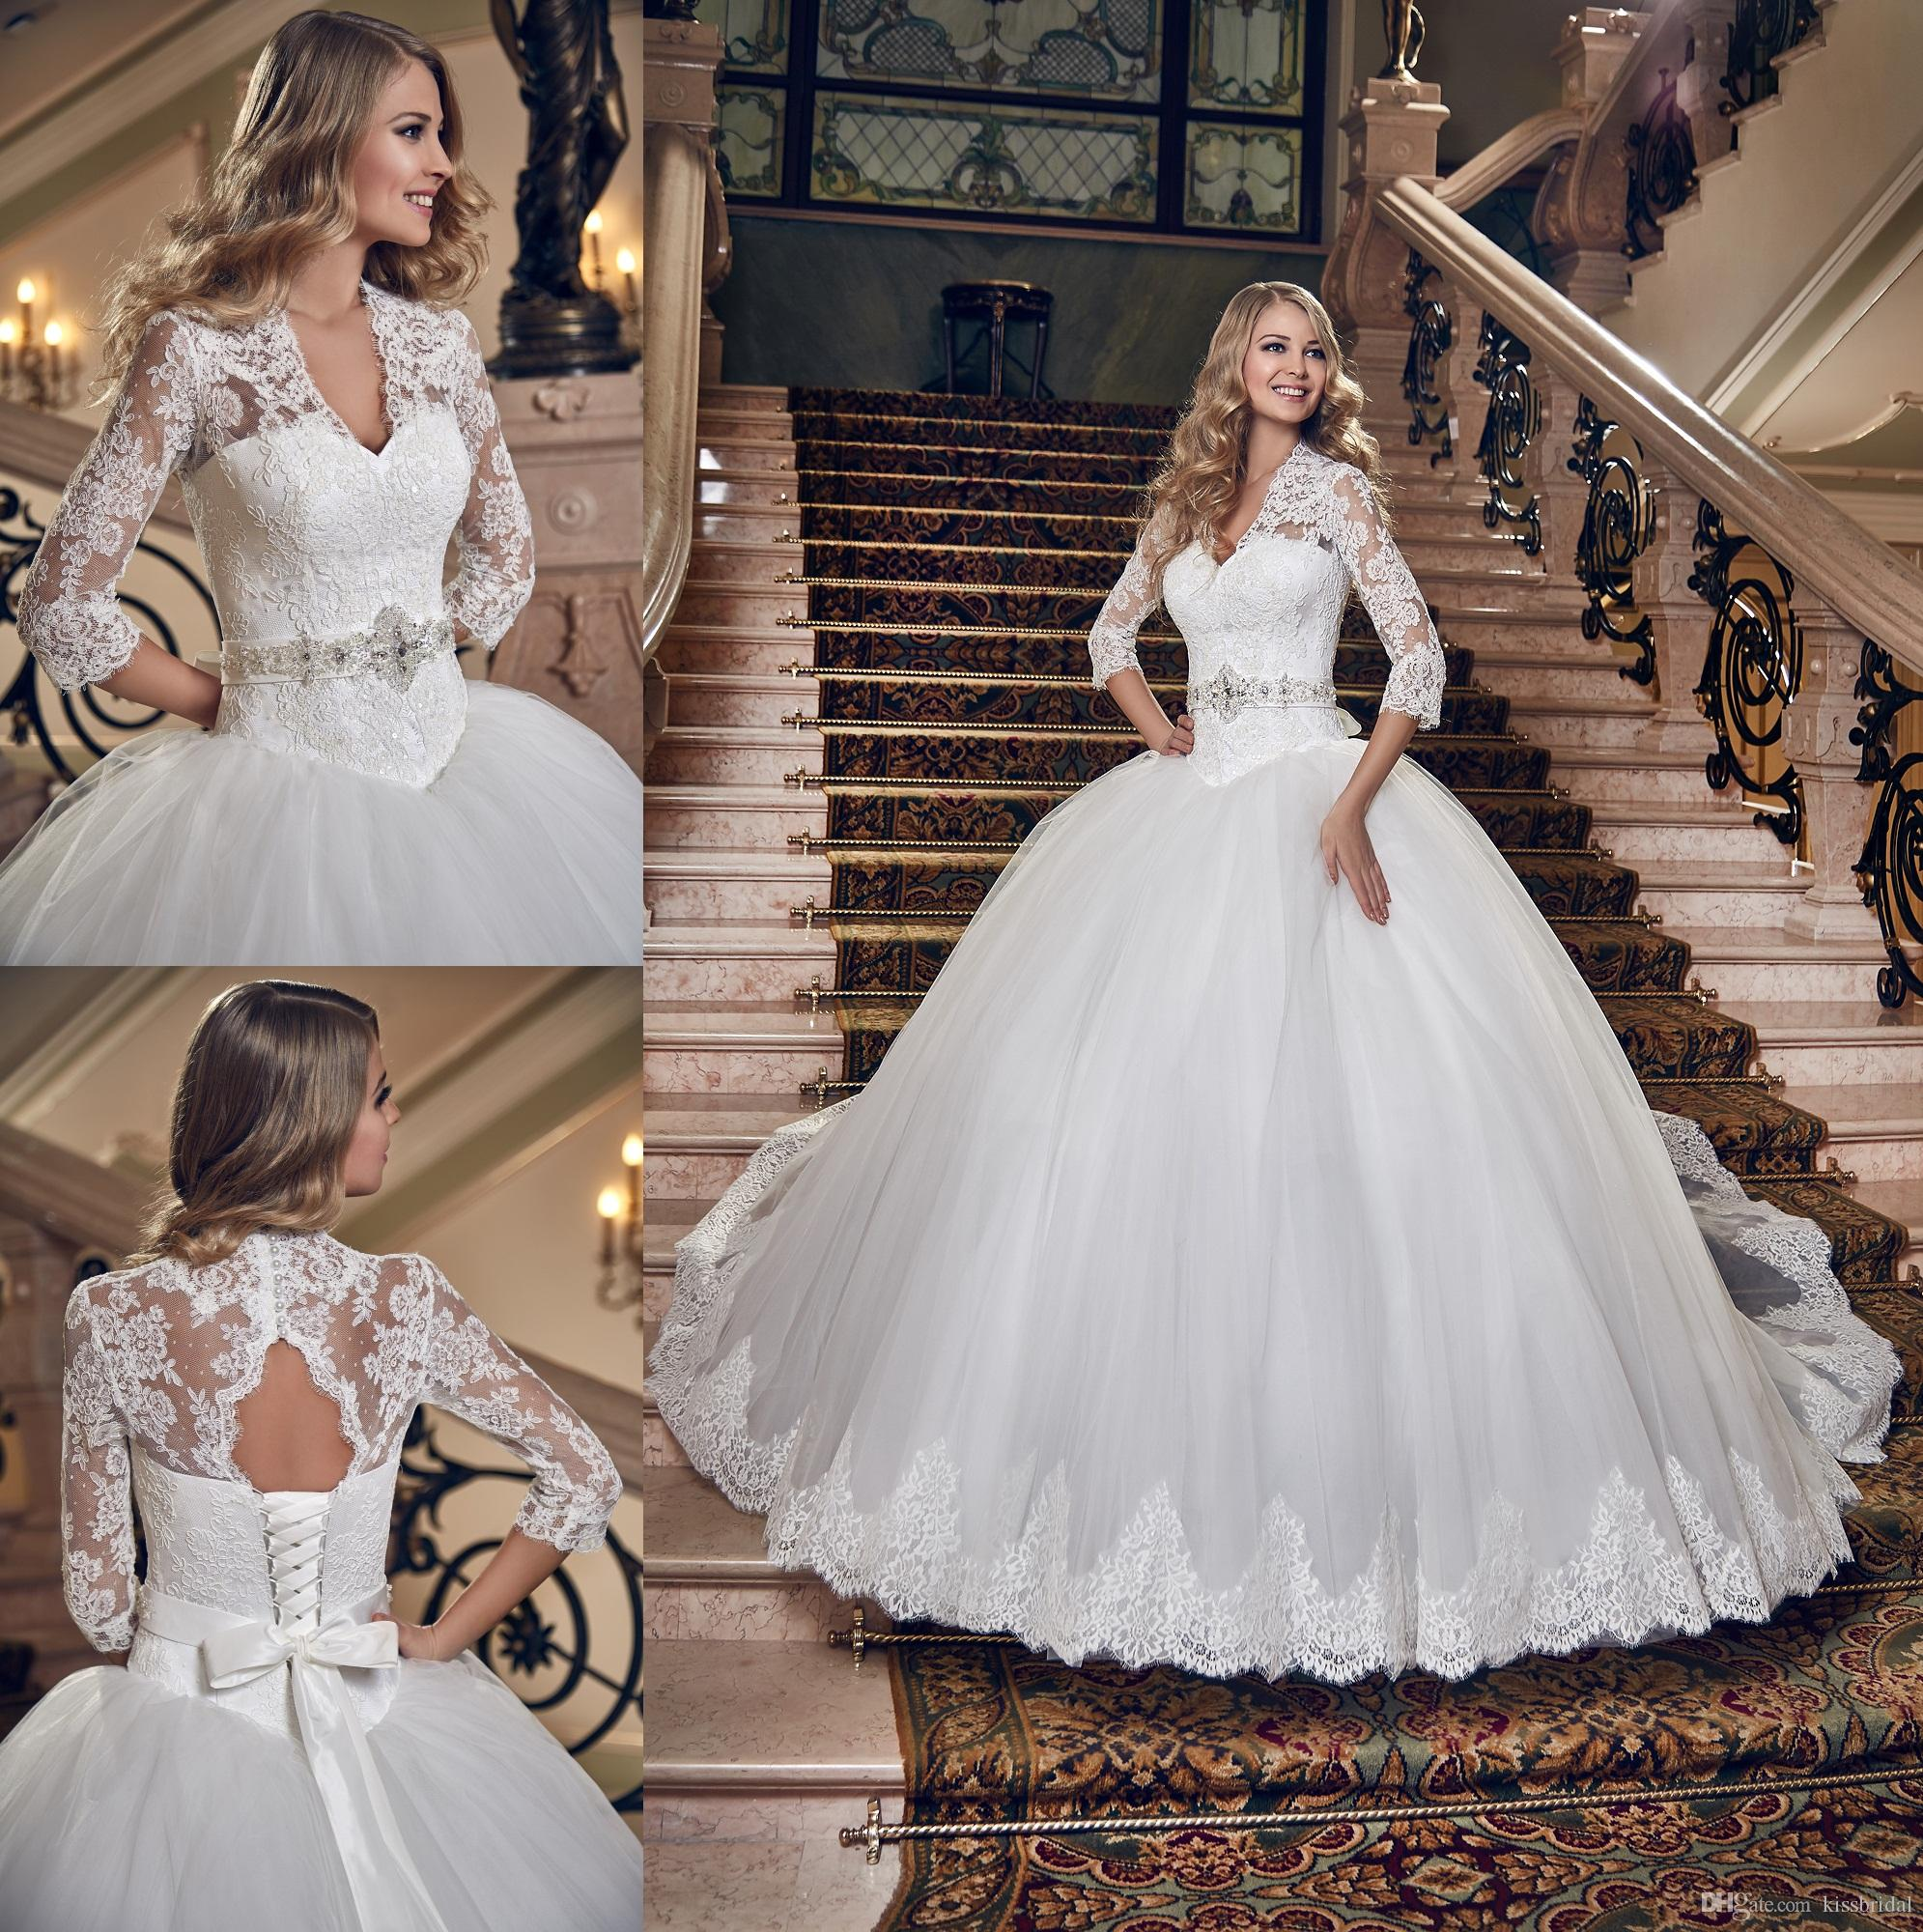 2015 Distinctive Lace 3 4 Long Sleeves Ball Gown Wedding